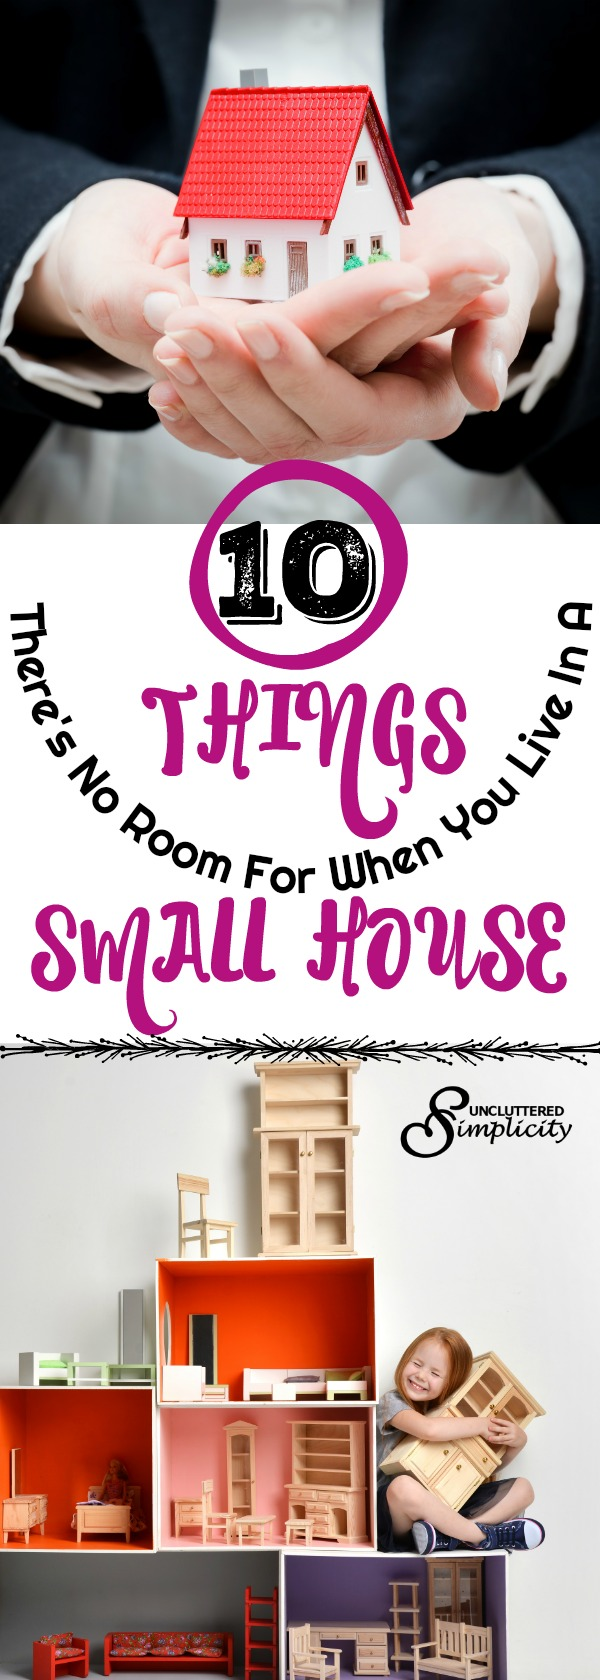 small house | living small | how to live in a small house with a family | simple living | tiny house #smallhouse #declutter #organize #smallhousefamily